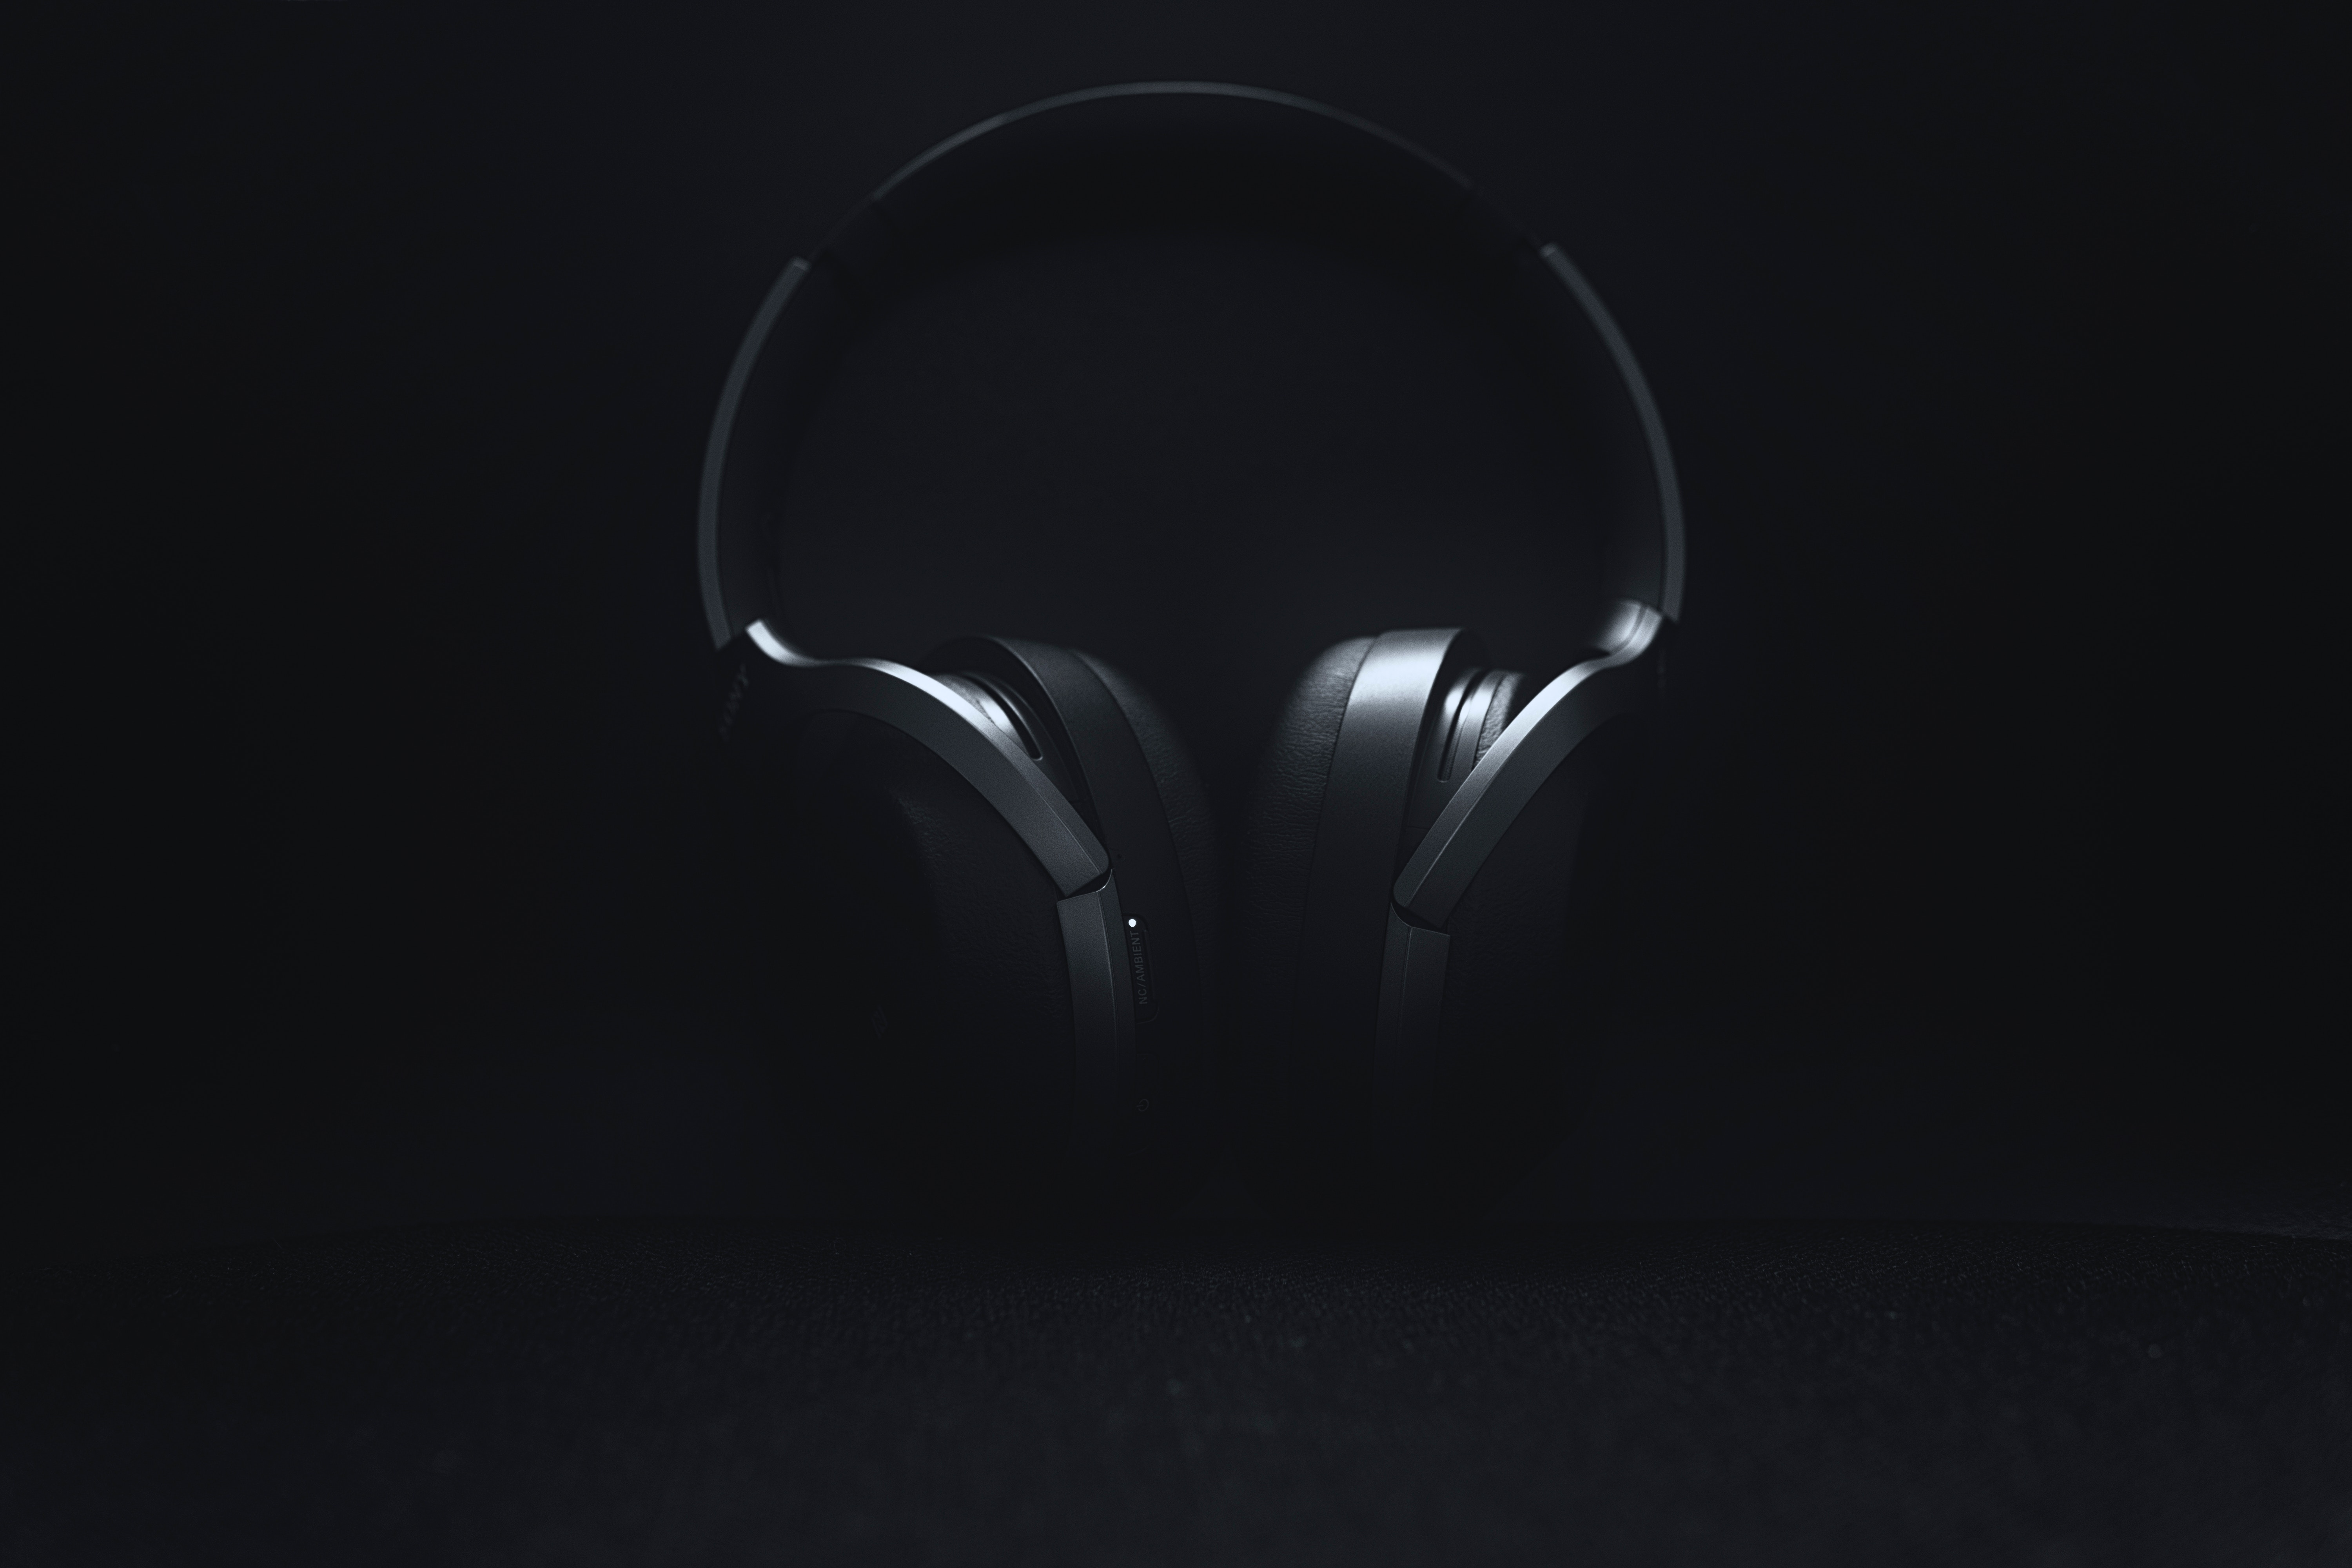 132954 download wallpaper Minimalism, Music, Headphones, Grey, Audio screensavers and pictures for free